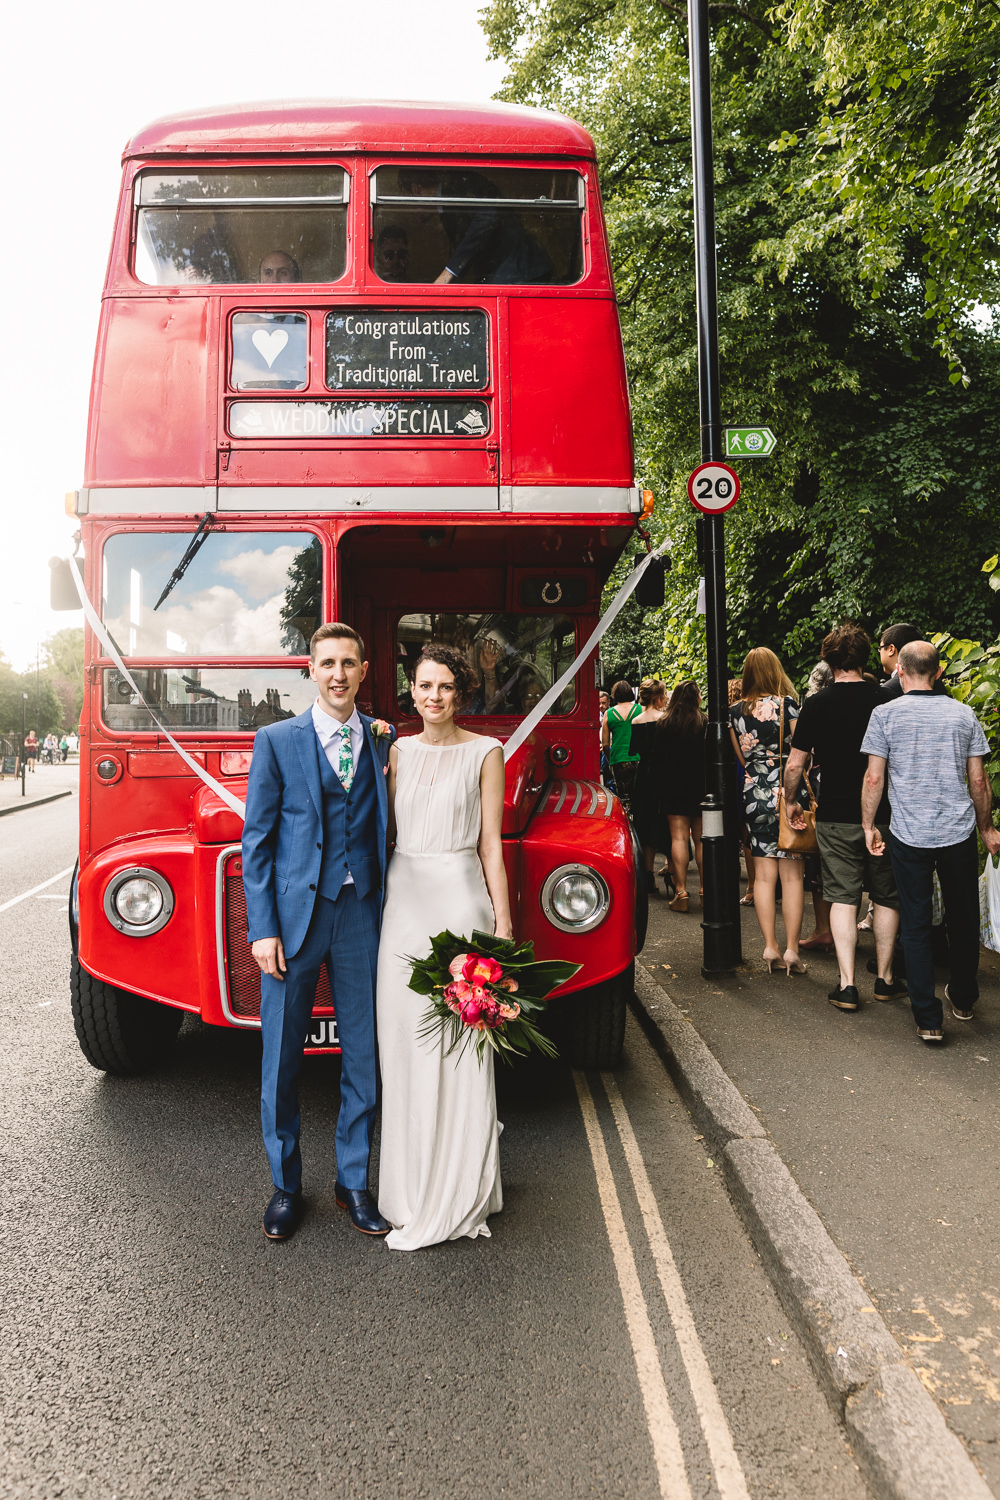 Bride Bridal Dress Gown Bias Cut Art Deco Three Piece Blue Suit Groom Tropical Bouquet Vintage Routemaster Bus Clapton Country Club Wedding Kate Jackson Photography